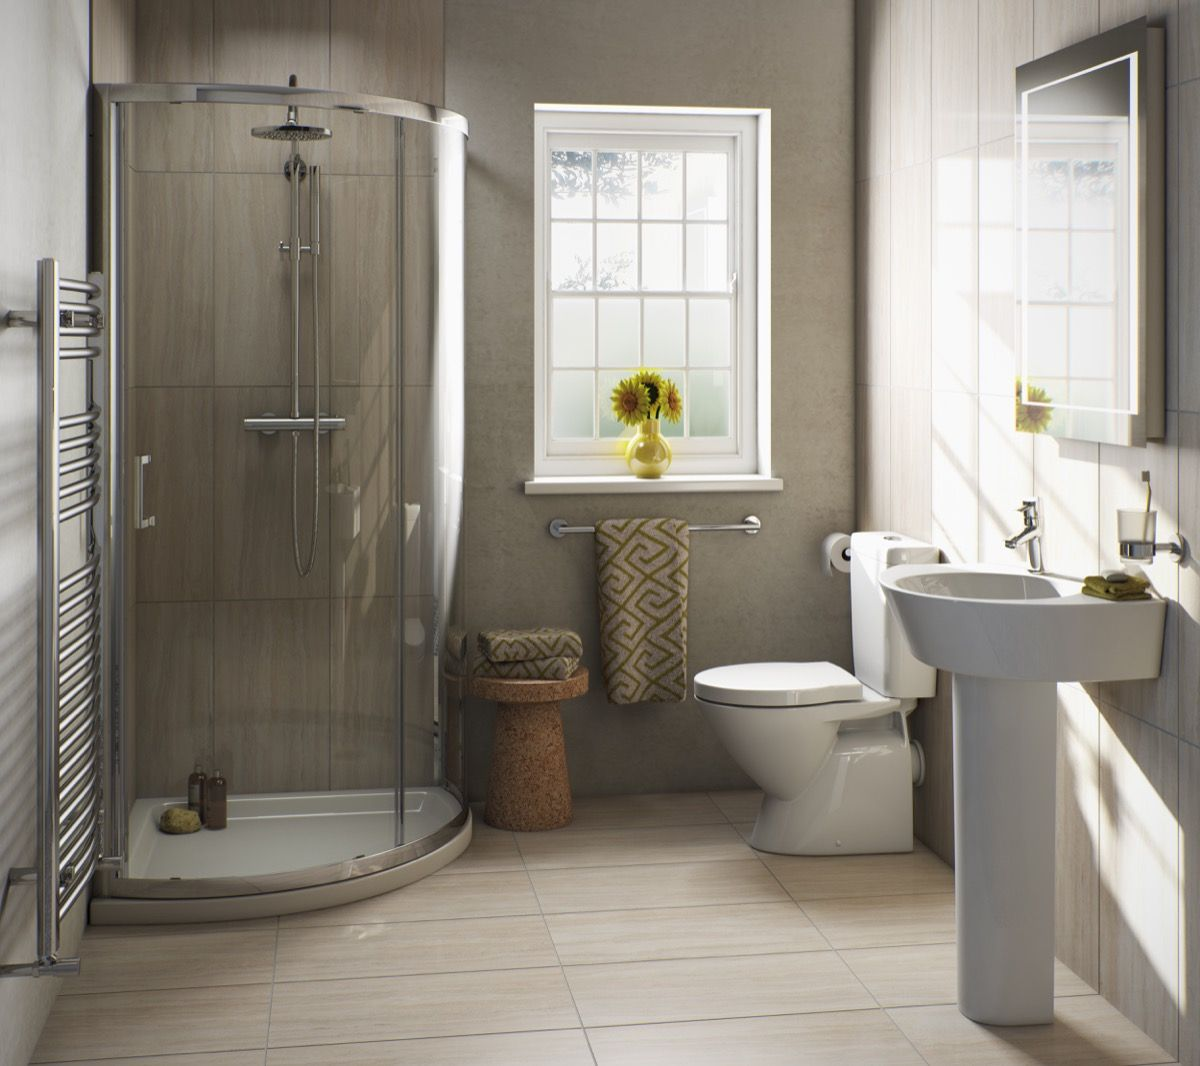 Unusual bathroom suites - The Ancona Bathroom Suite Range Is Perfect If You Re Looking For A Unusual Bathroom